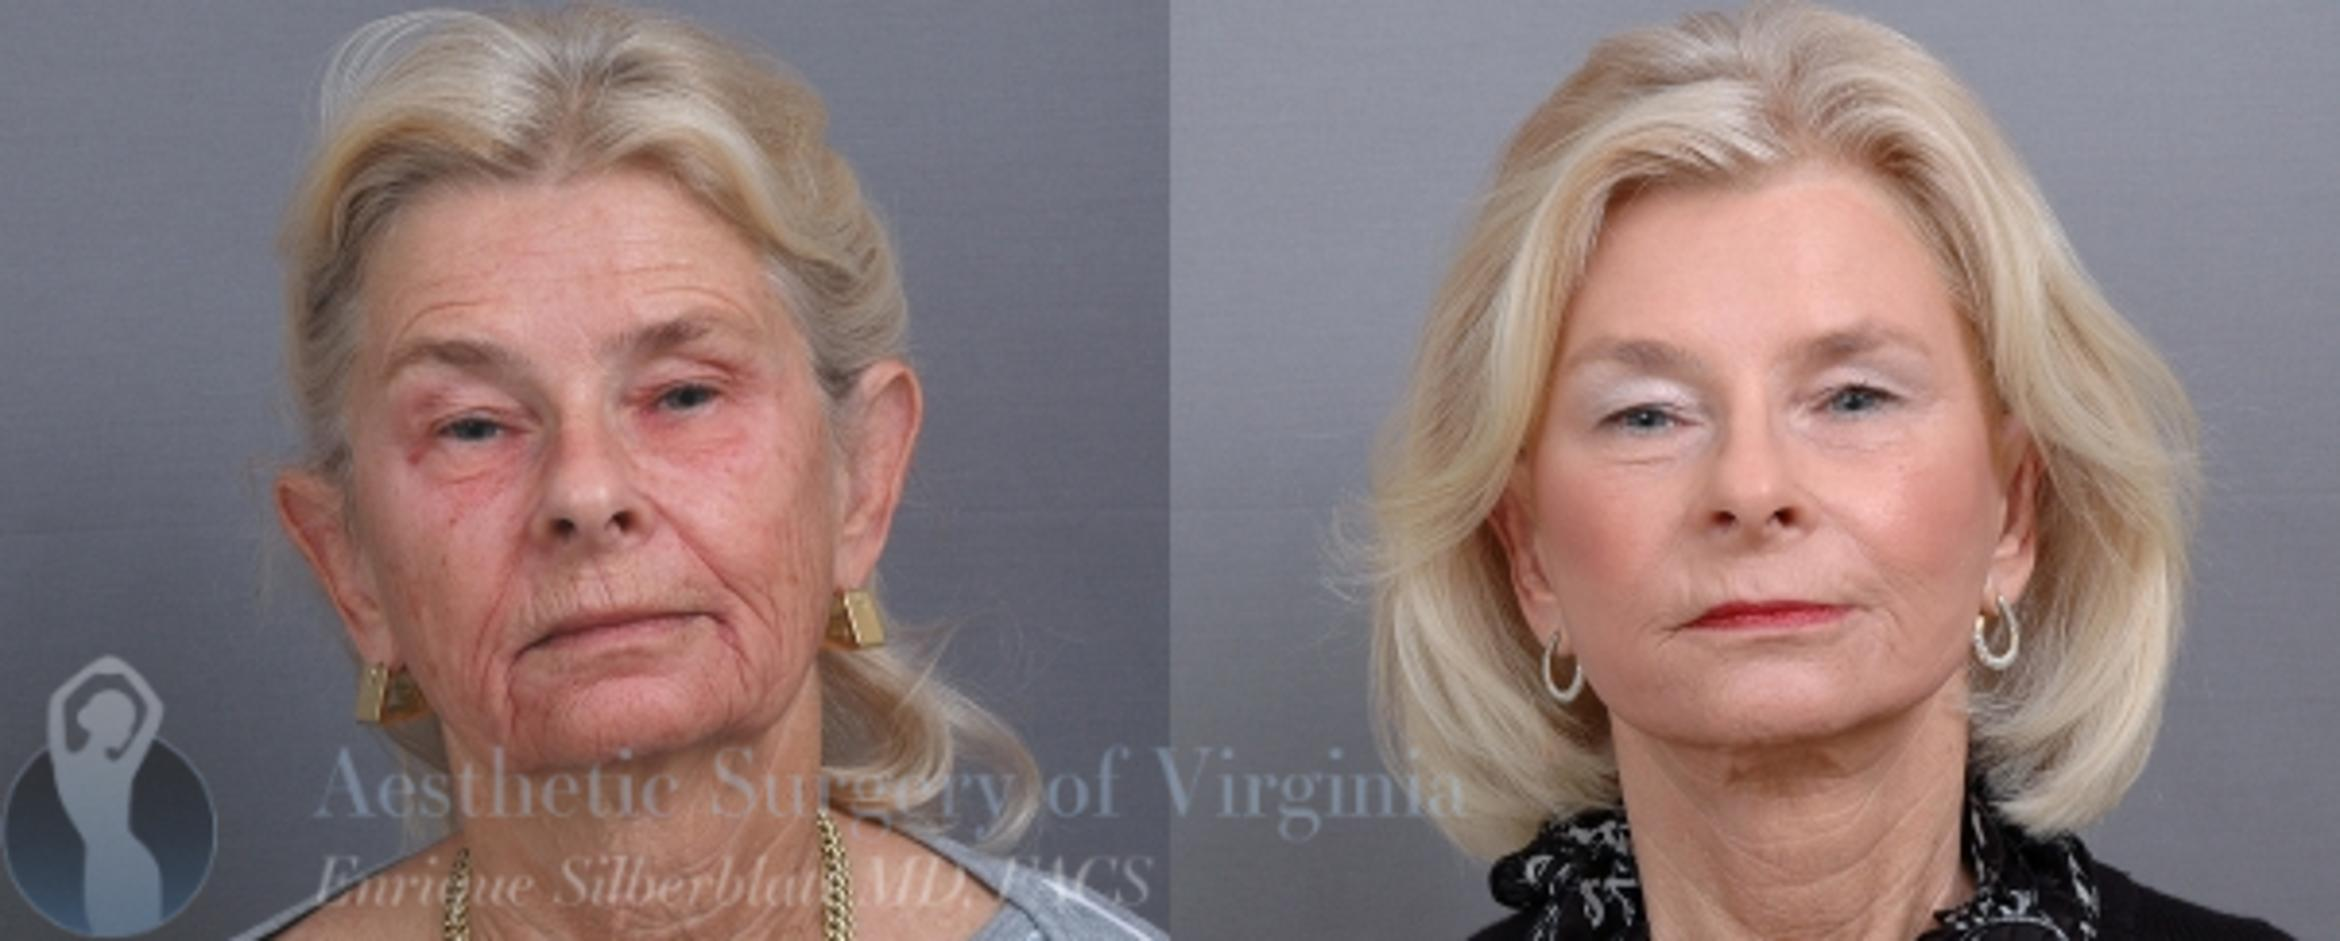 Facelift Case 46 Before & After View #1 | Roanoke, VA | Aesthetic Surgery of Virginia: Enrique Silberblatt, MD